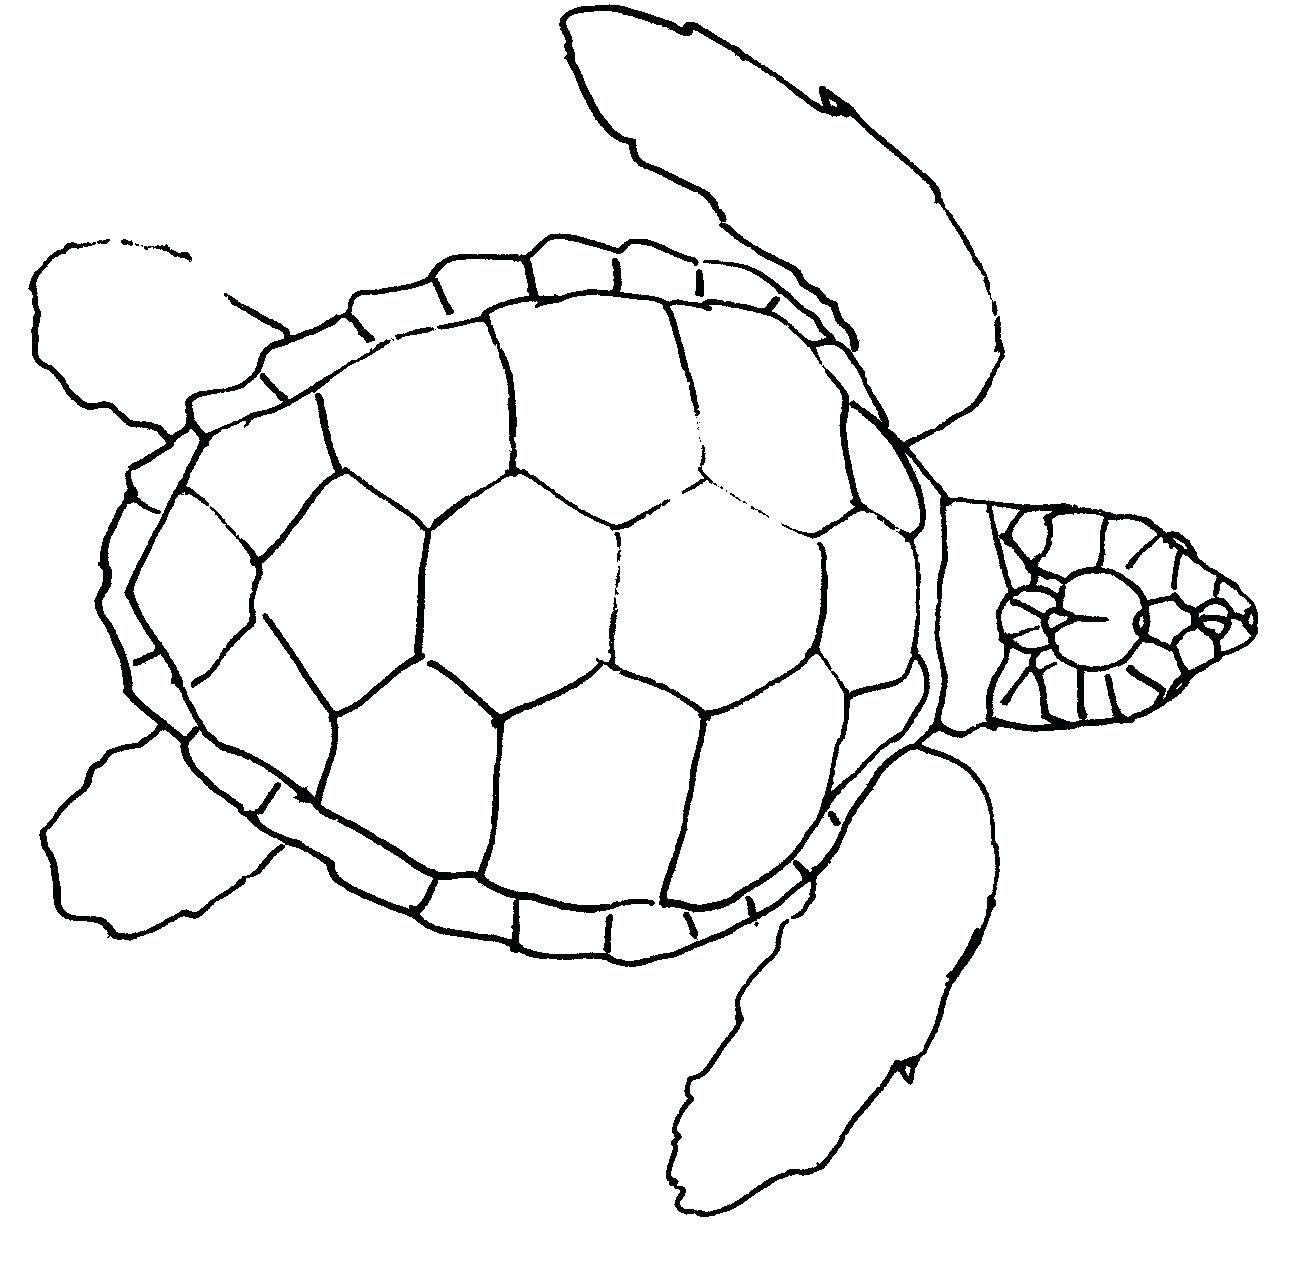 1295x1261 Page 44 Monster Truck Coloring Pages. Sea Turtle